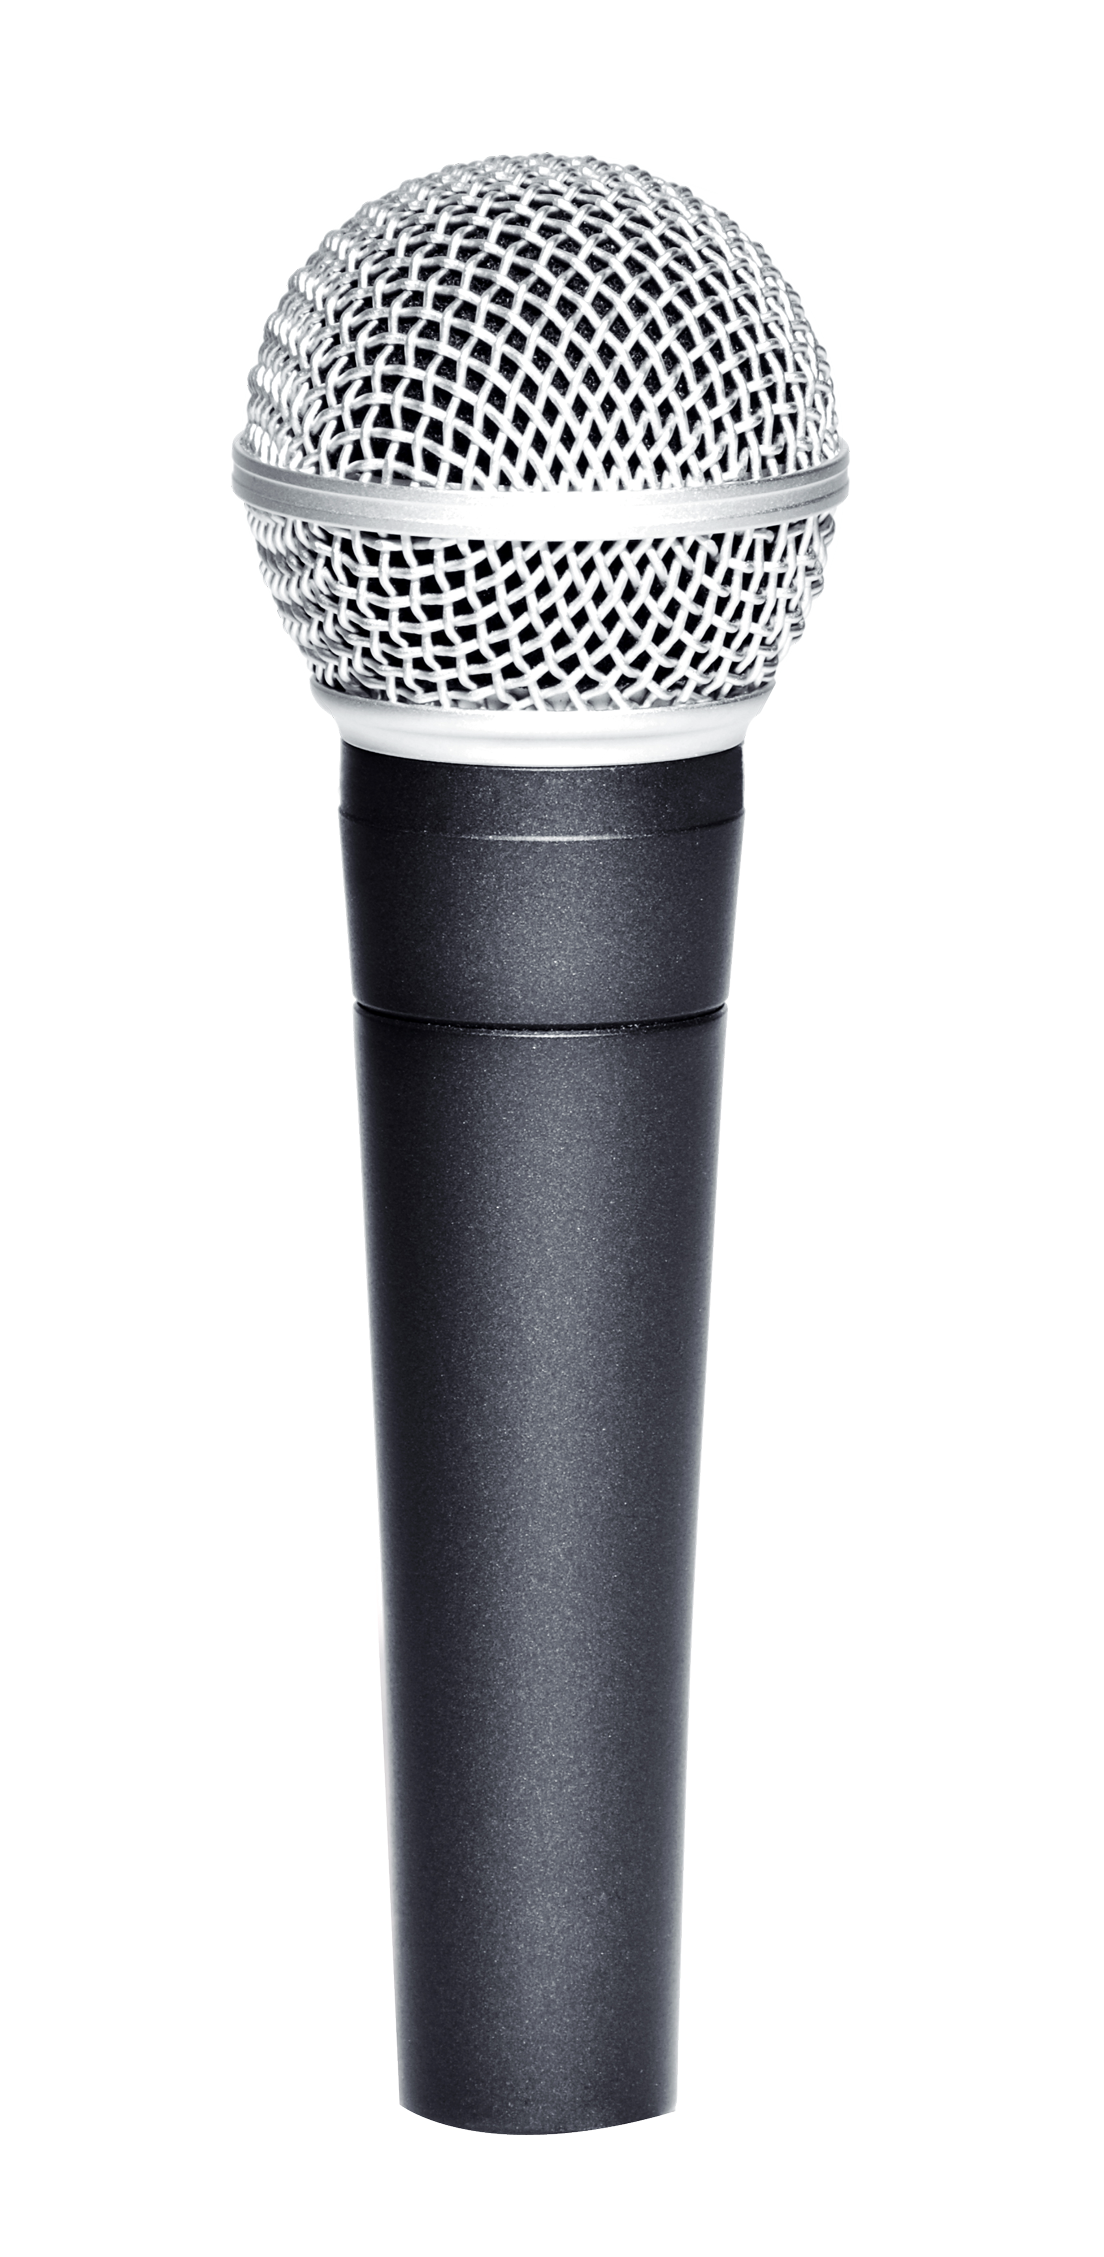 microphone png image purepng free transparent cc0 png